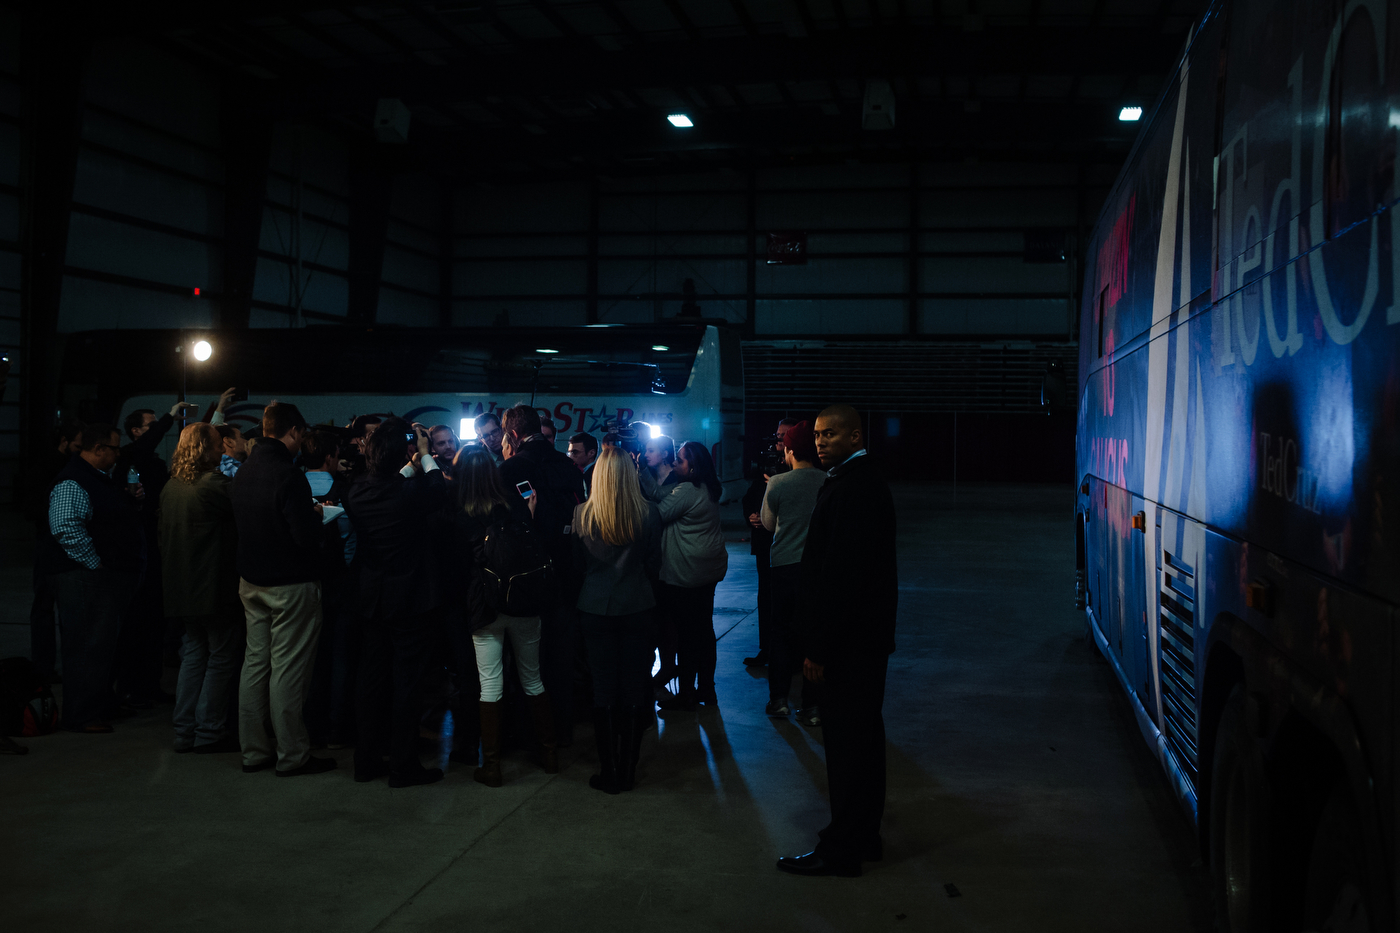 A private security guard watches as Republican U.S. presidential candidate Ted Cruz' holds a media availability before an event in Spencer, Iowa on January 6, 2016.